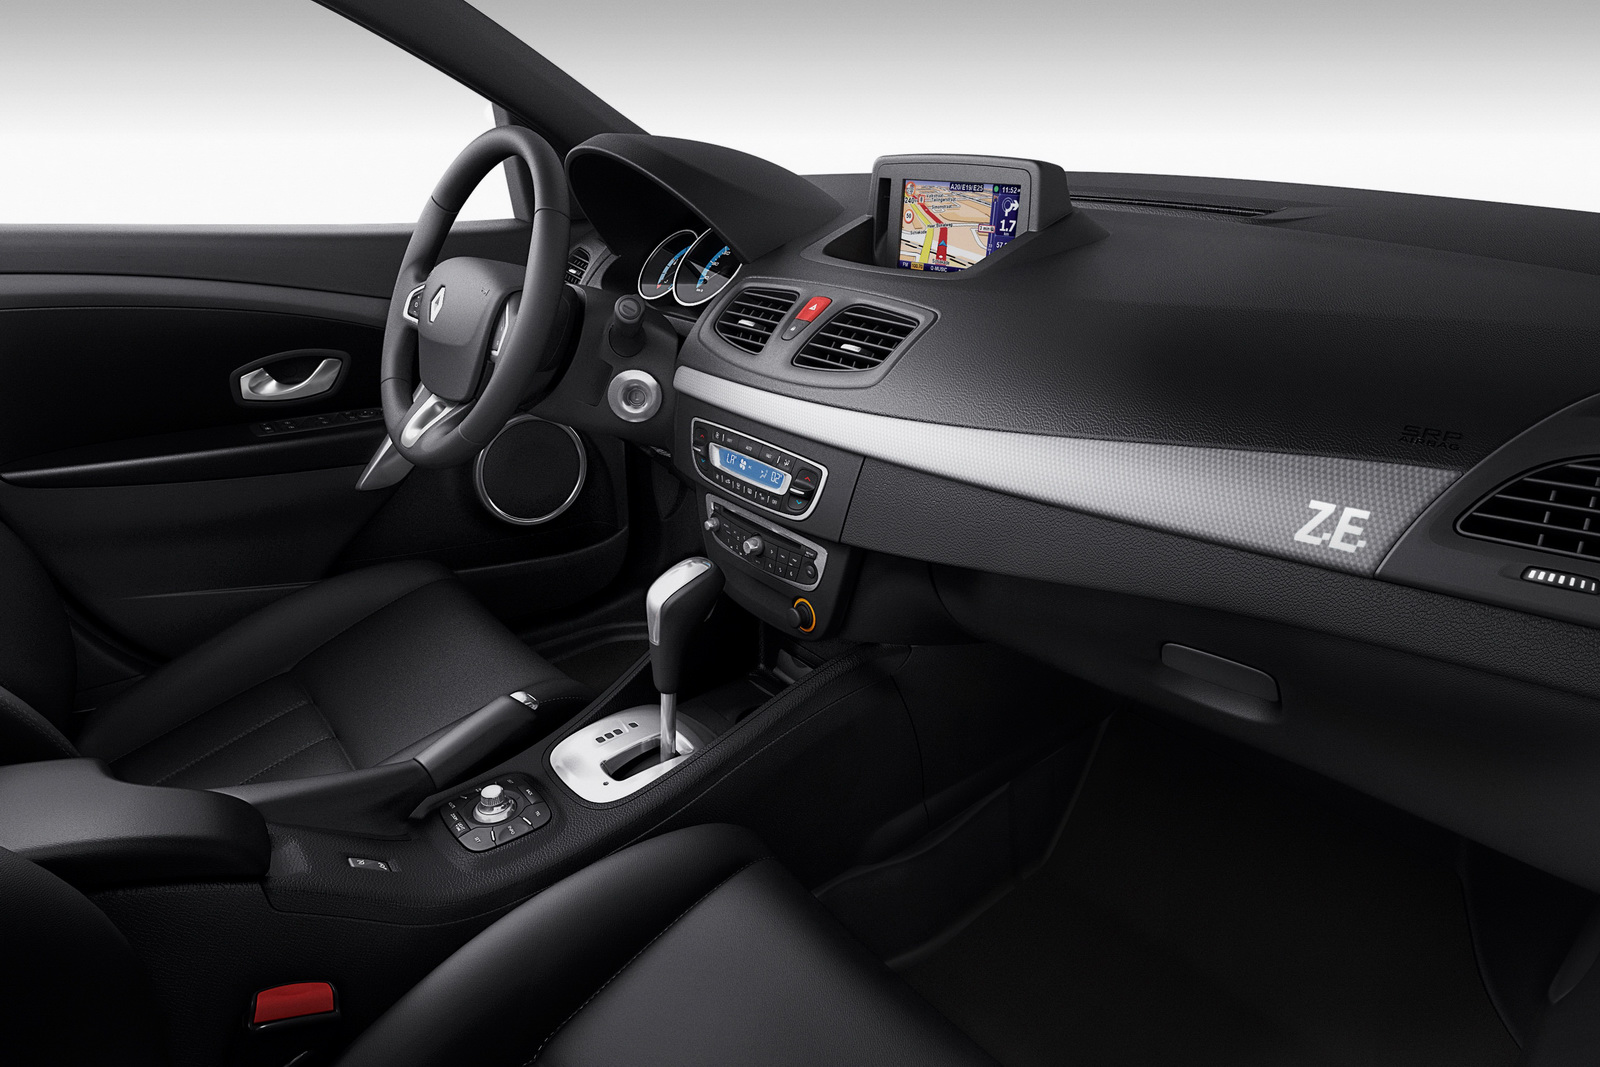 Renault Fluence ZE 1 Fluence Z.E. Saloon Car to be Launched by Renault with Revised Price Range